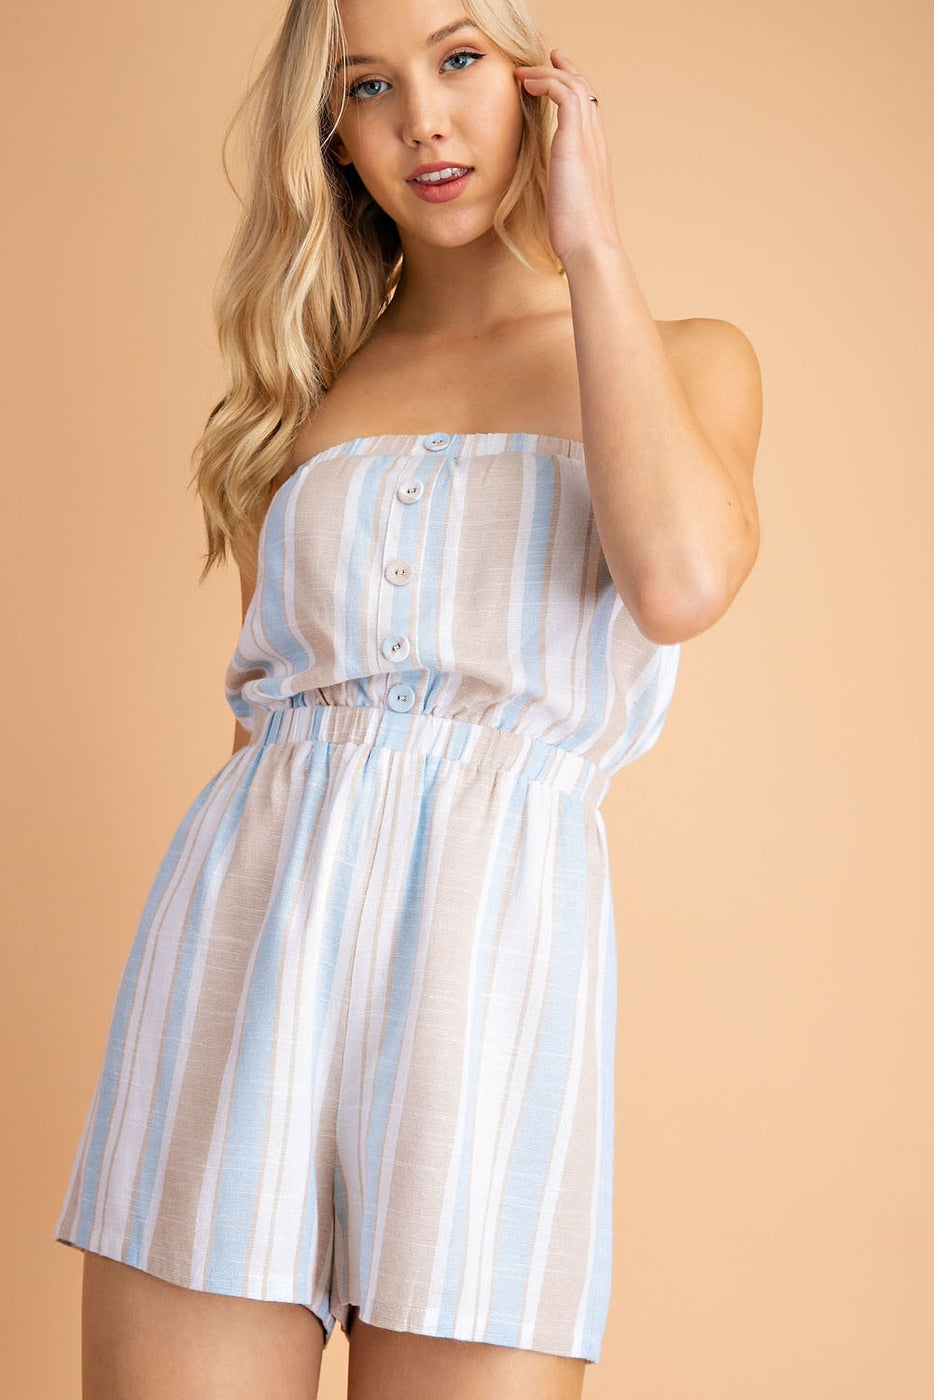 Linen Stripe Button Tube Top Romper soliman-studio.myshopify.com